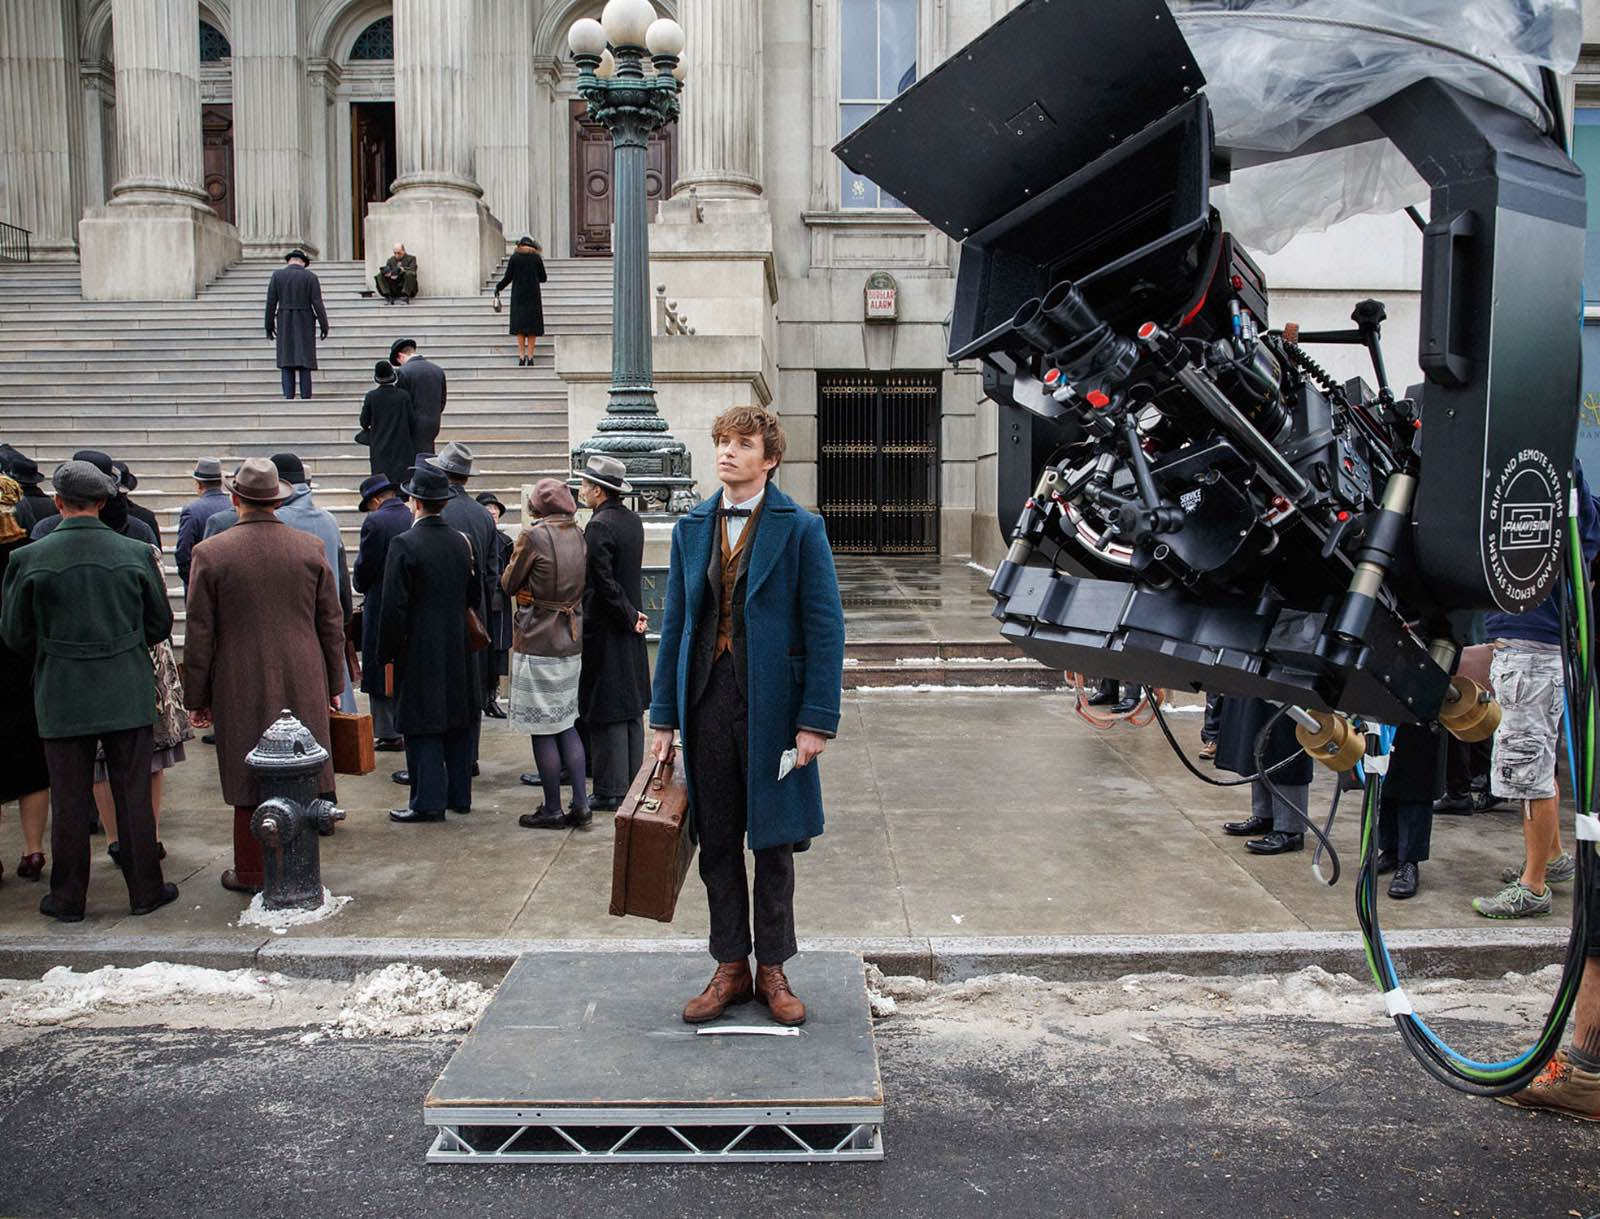 Eddie Redmayne on the set of Fantastic Beasts and Where to Find Them (2016)